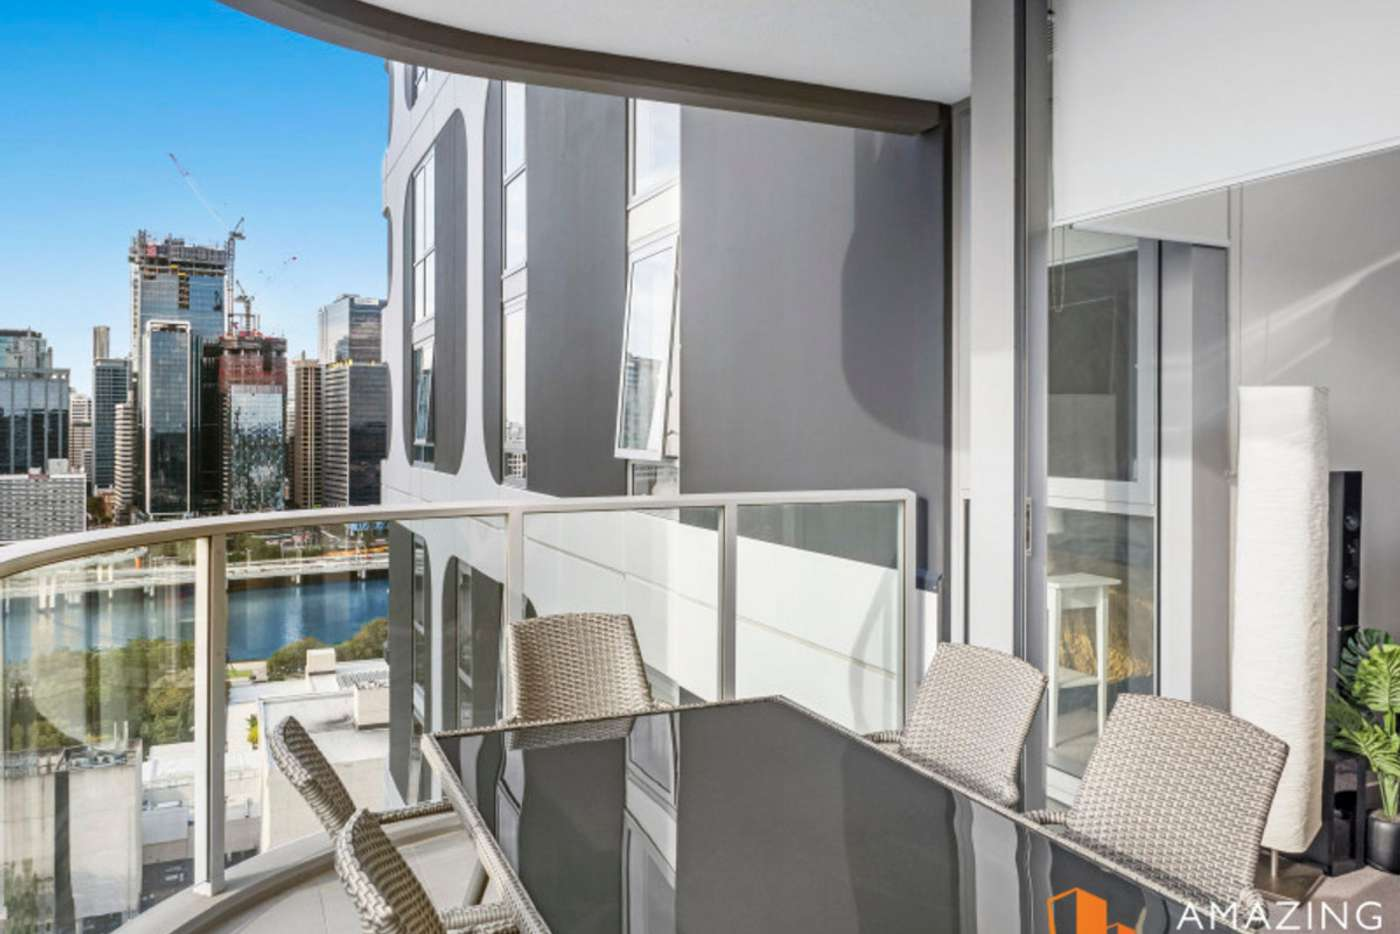 Main view of Homely apartment listing, 58 Hope Street, South Brisbane QLD 4101